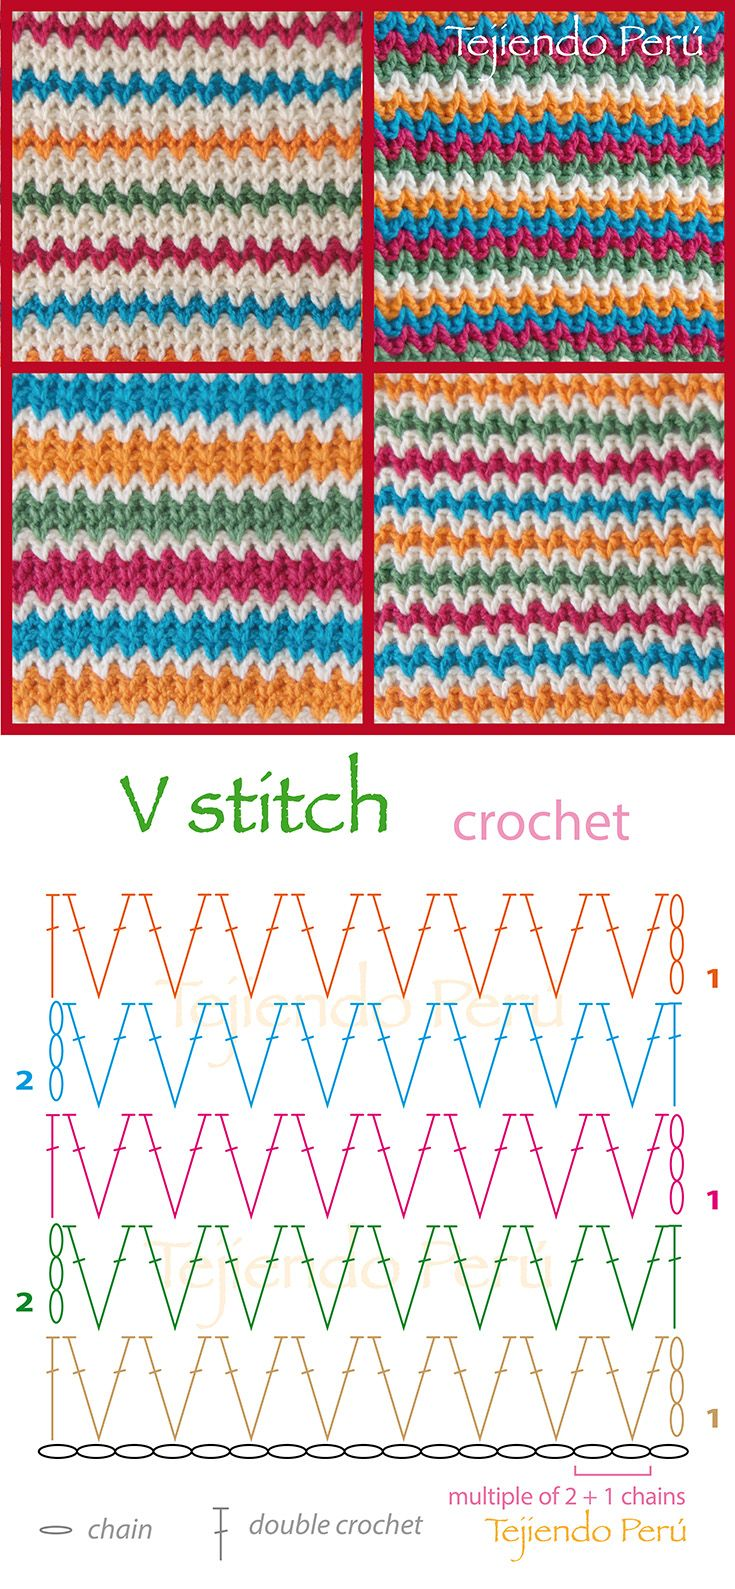 Crochet Stitches Net : Pinterest ? The world?s catalog of ideas